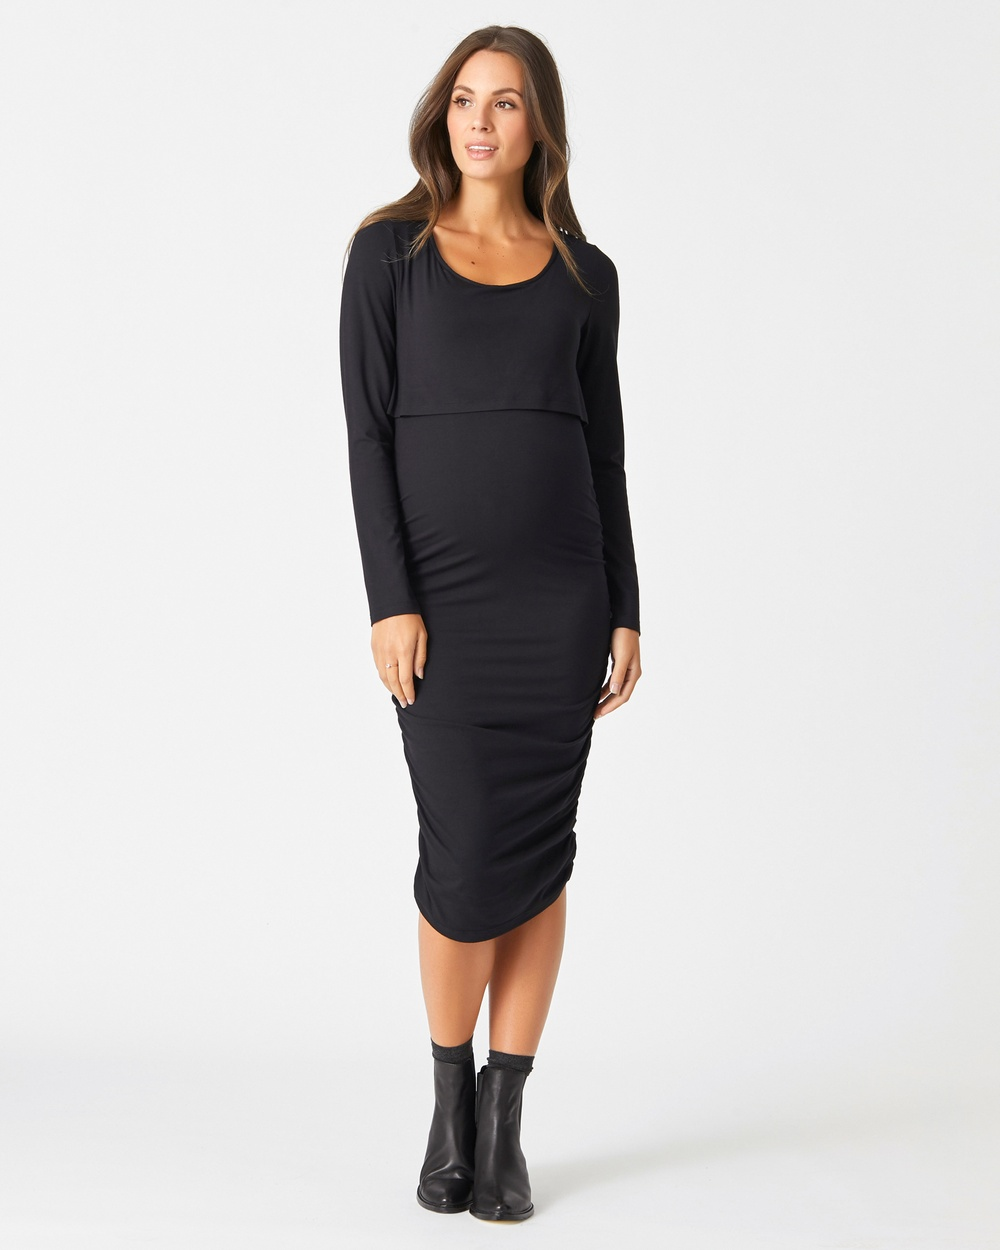 Pea in a Pod Maternity Black Lindsay Dress